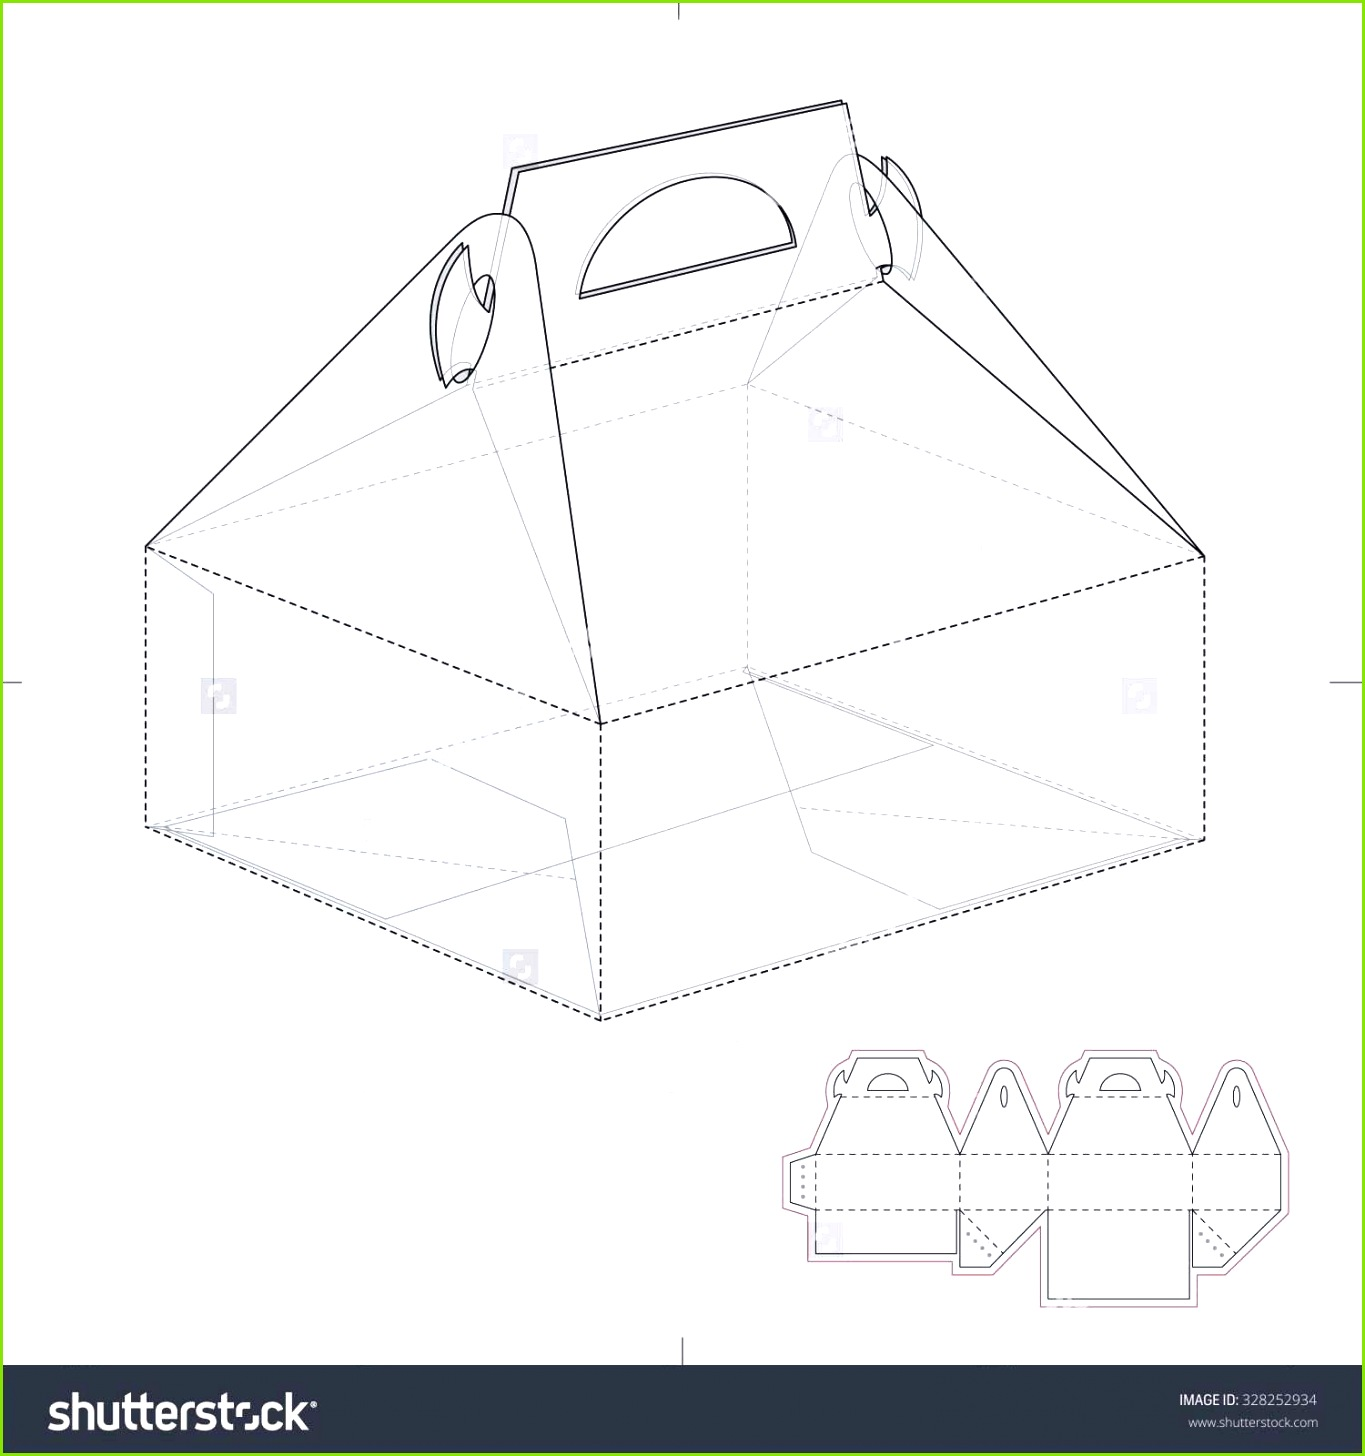 Cake Carrier Box With Die Line Template Ilustraci³n vectorial en stock Shutterstock